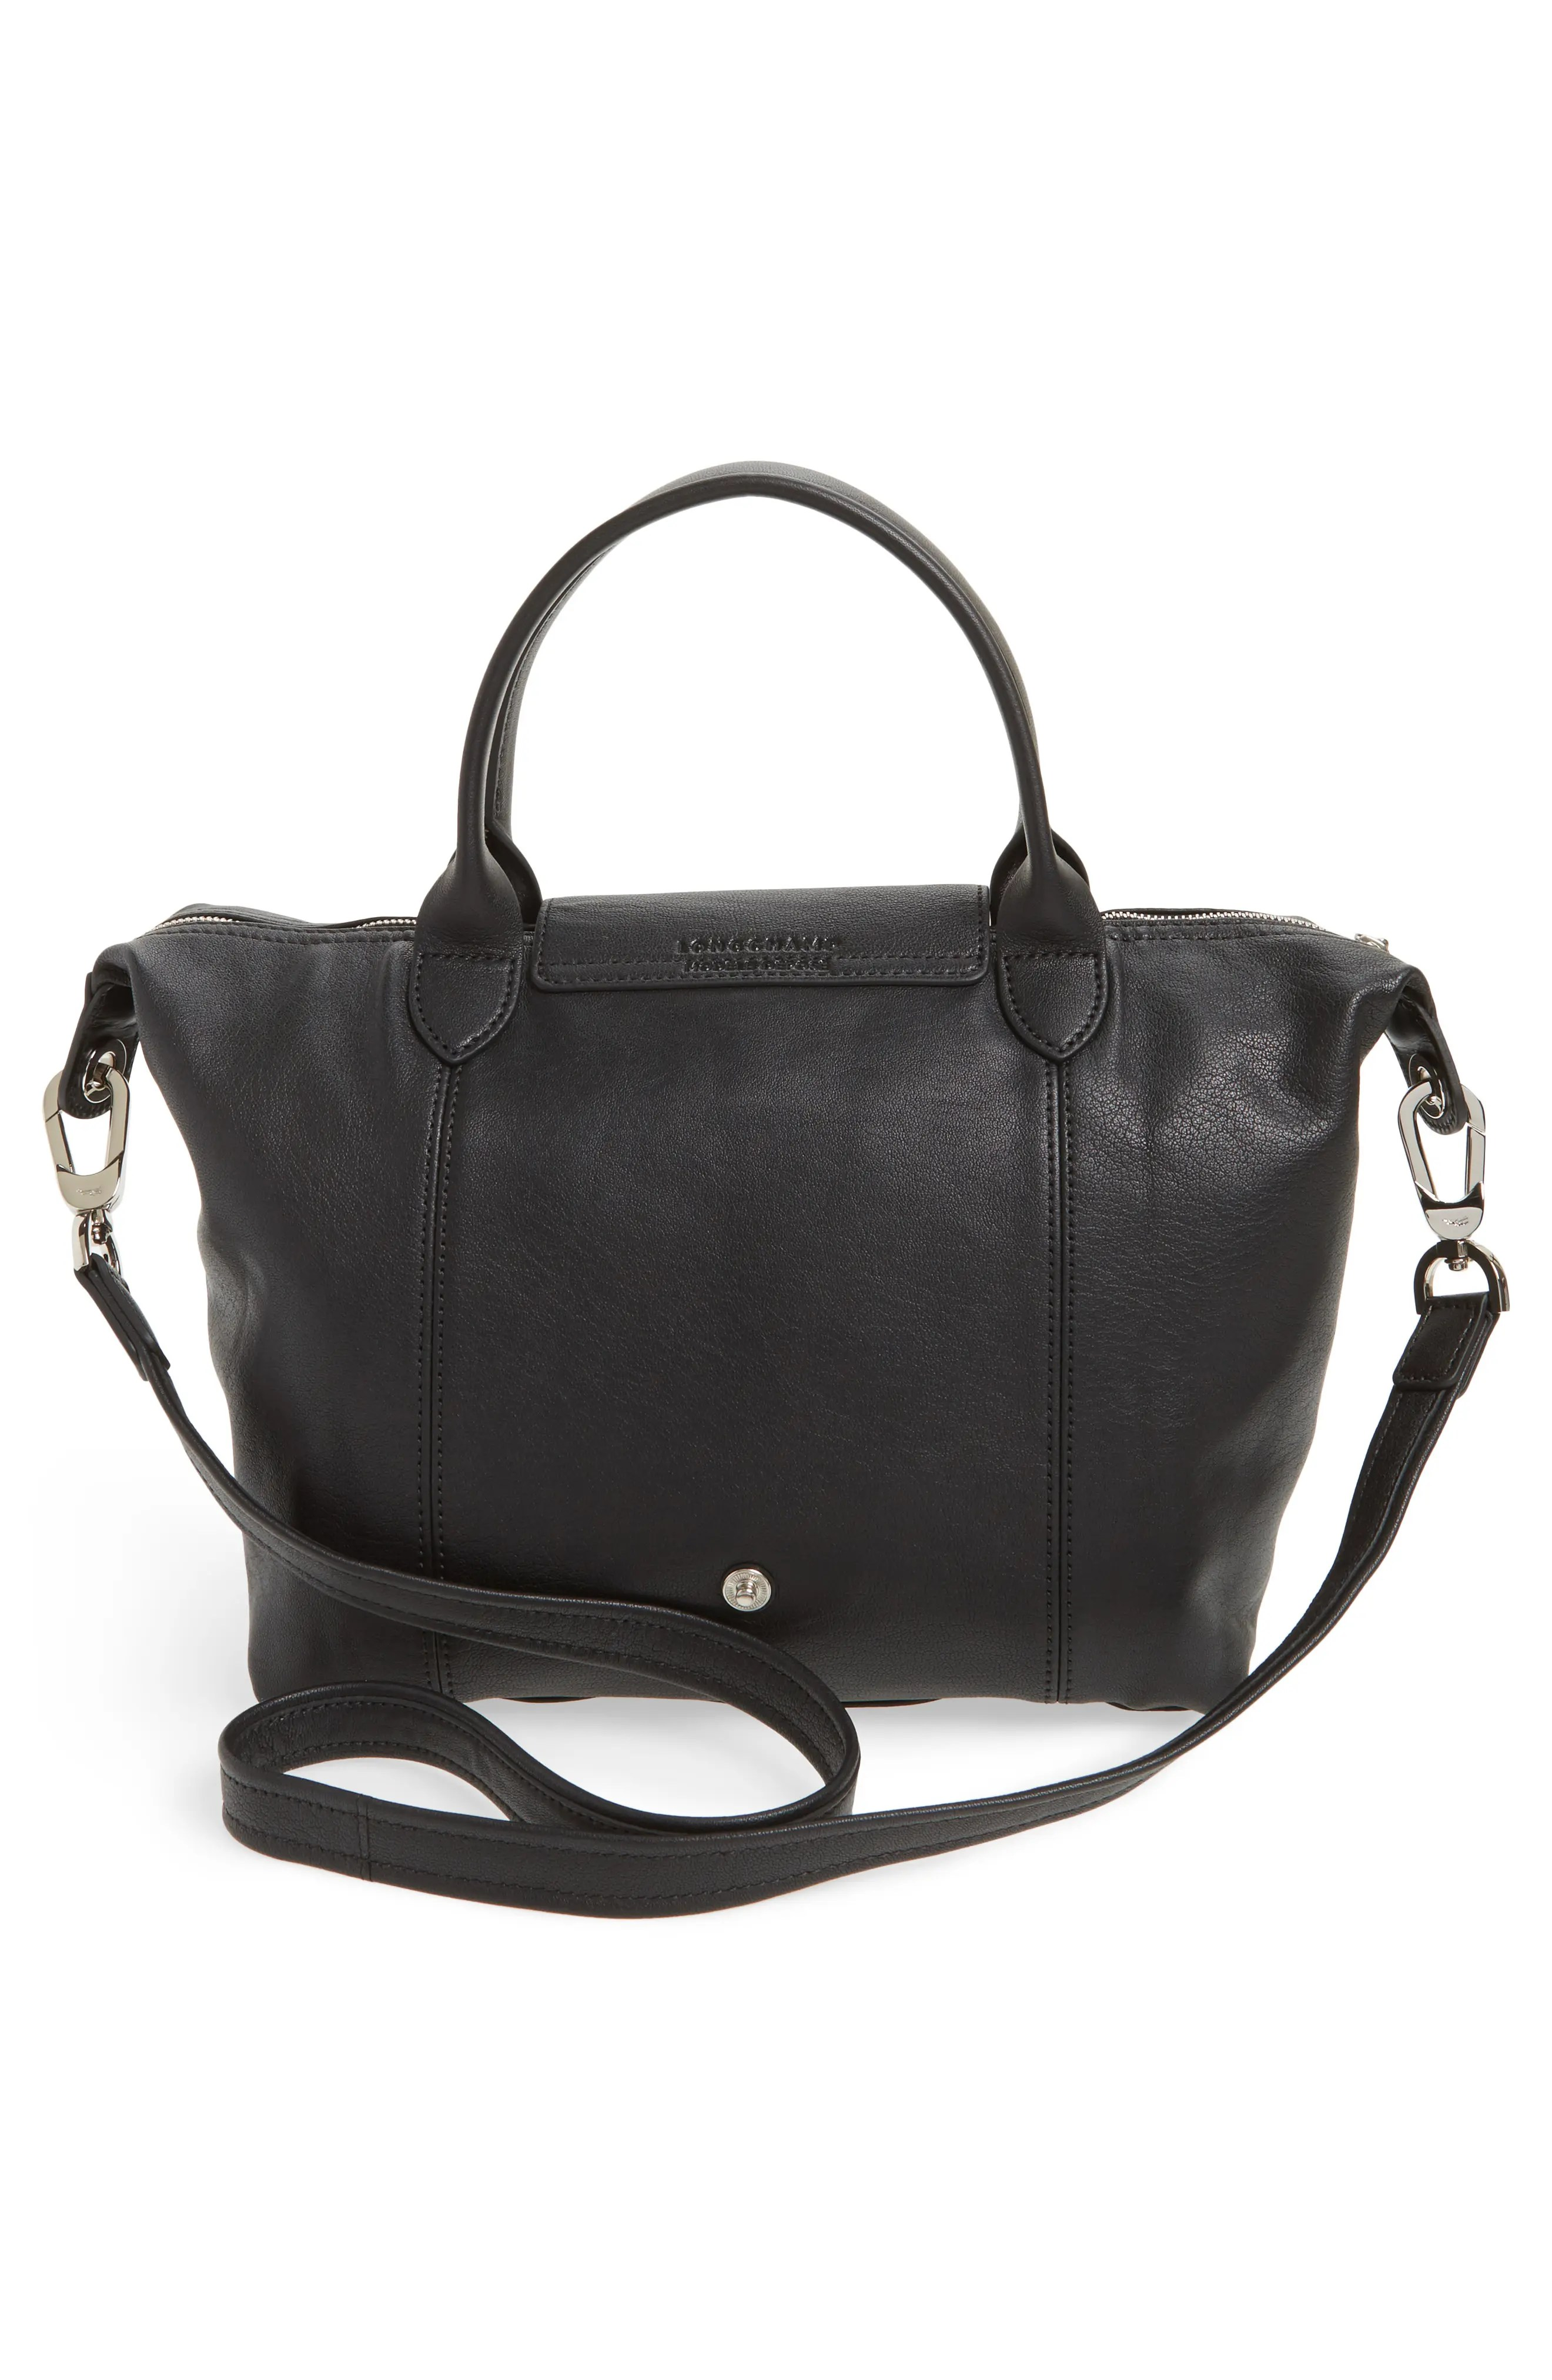 Leather Cuir Small Le Pliage Cuir Leather Top Handle Tote